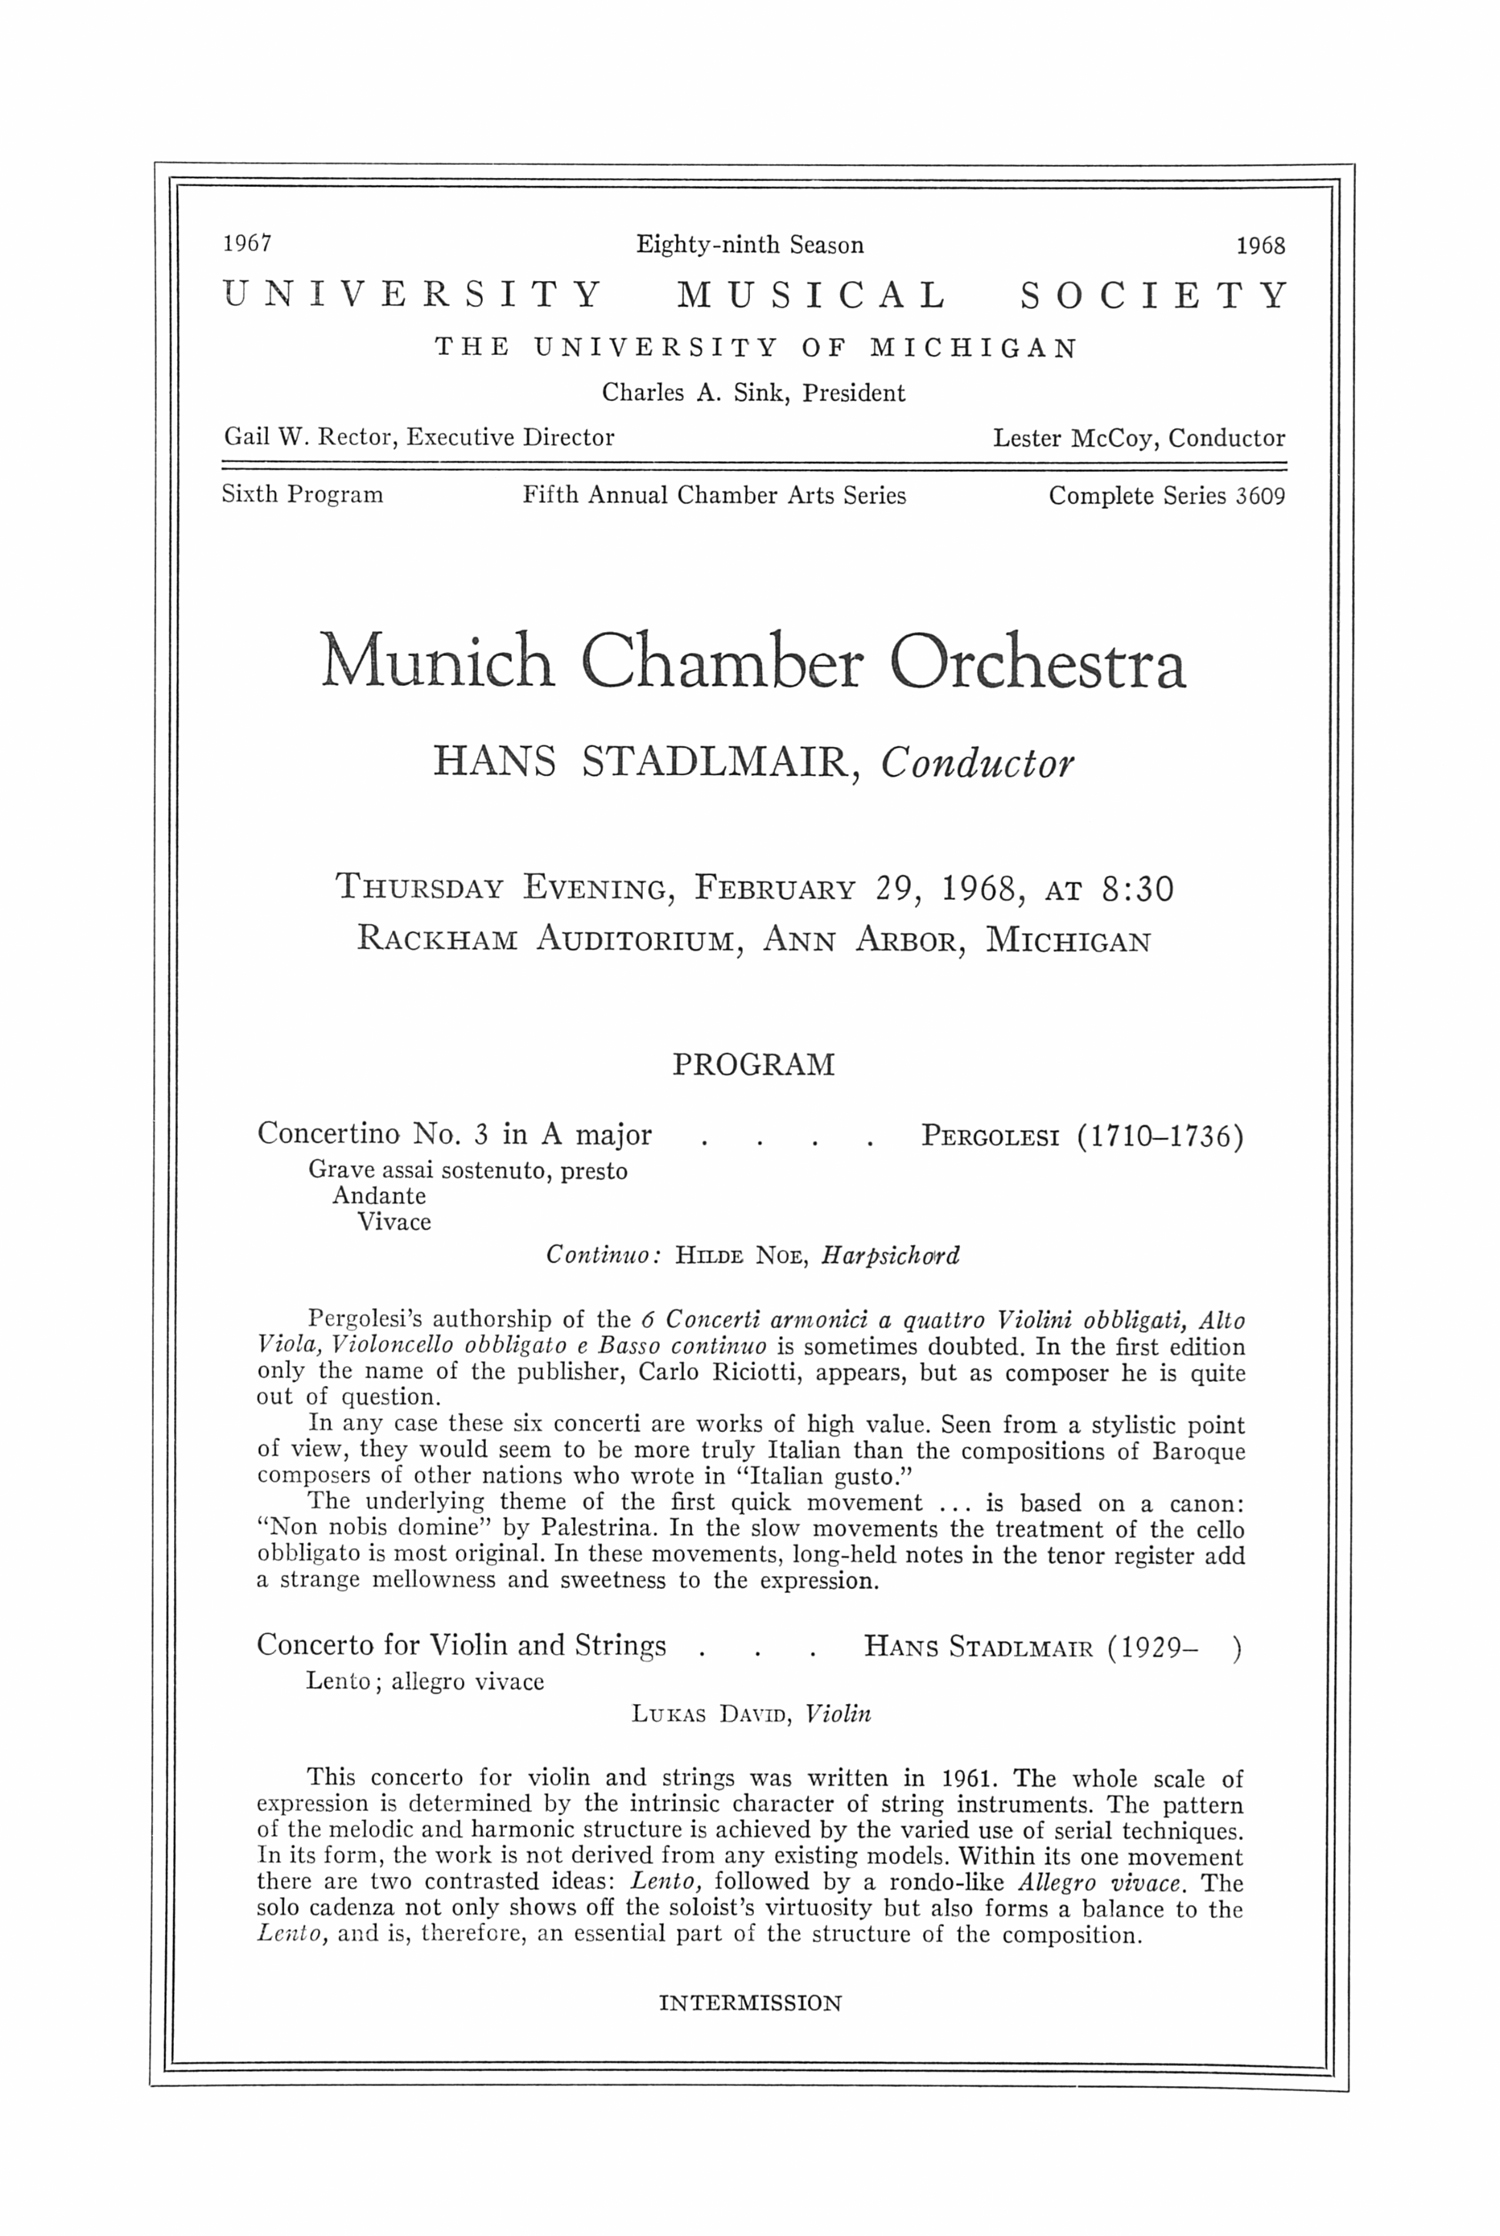 UMS Concert Program, February 29, 1968: Munich Chamber Orchestra --  image